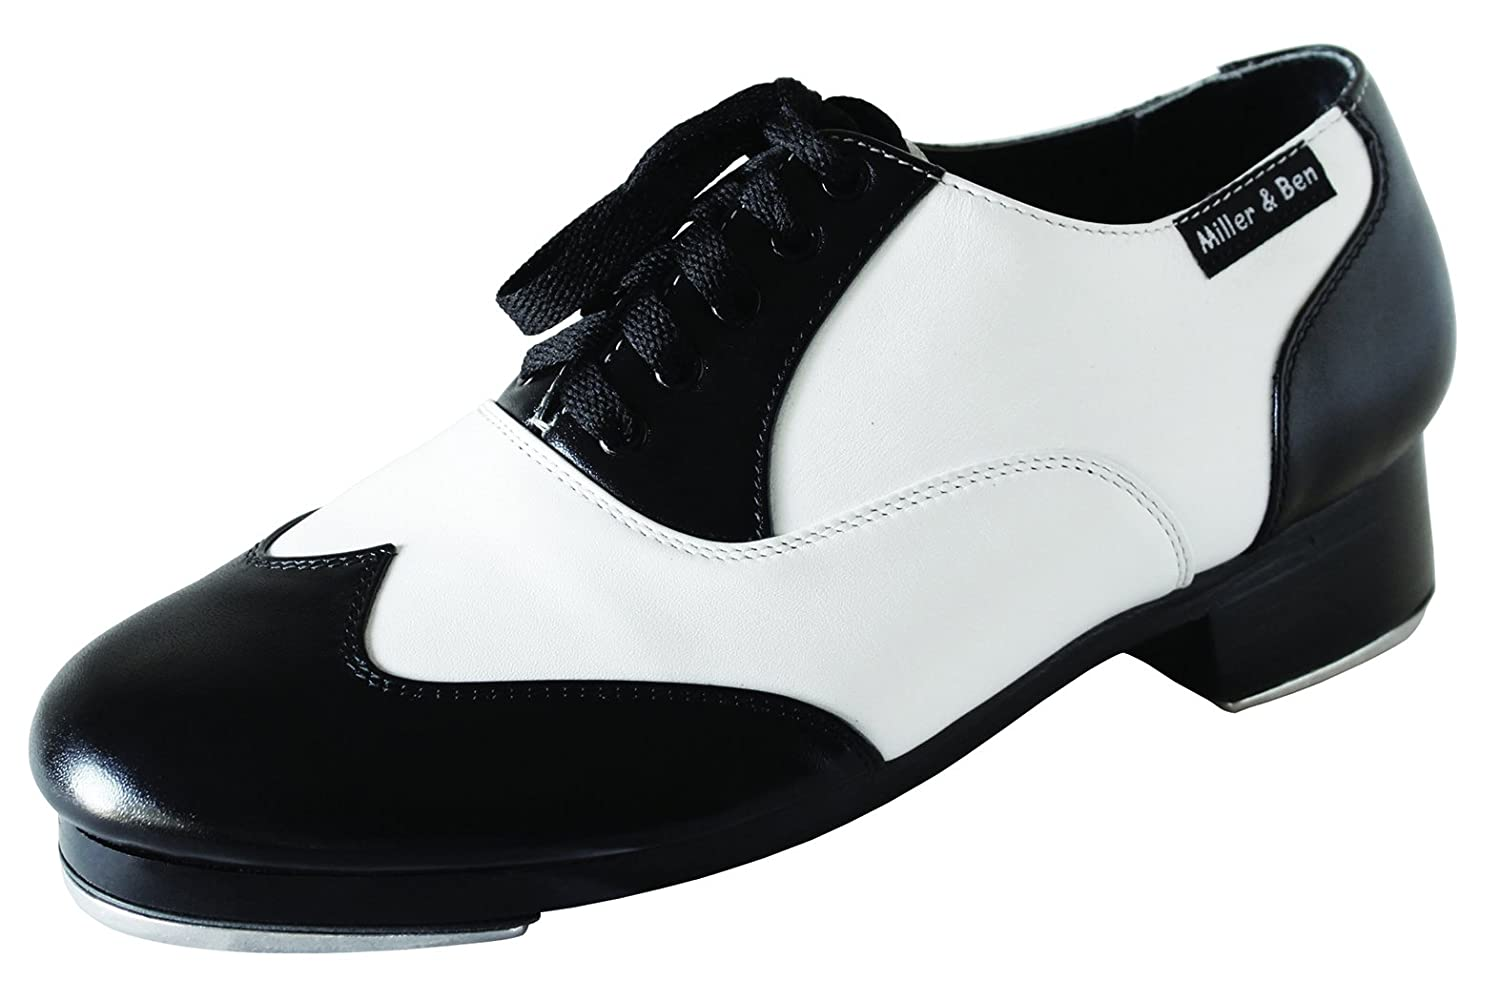 Pin Up Shoes- Heels, Pumps & Flats Miller & Ben Tap Shoes Jazz-Tap Master Black & White - STANDARD SIZES $285.00 AT vintagedancer.com